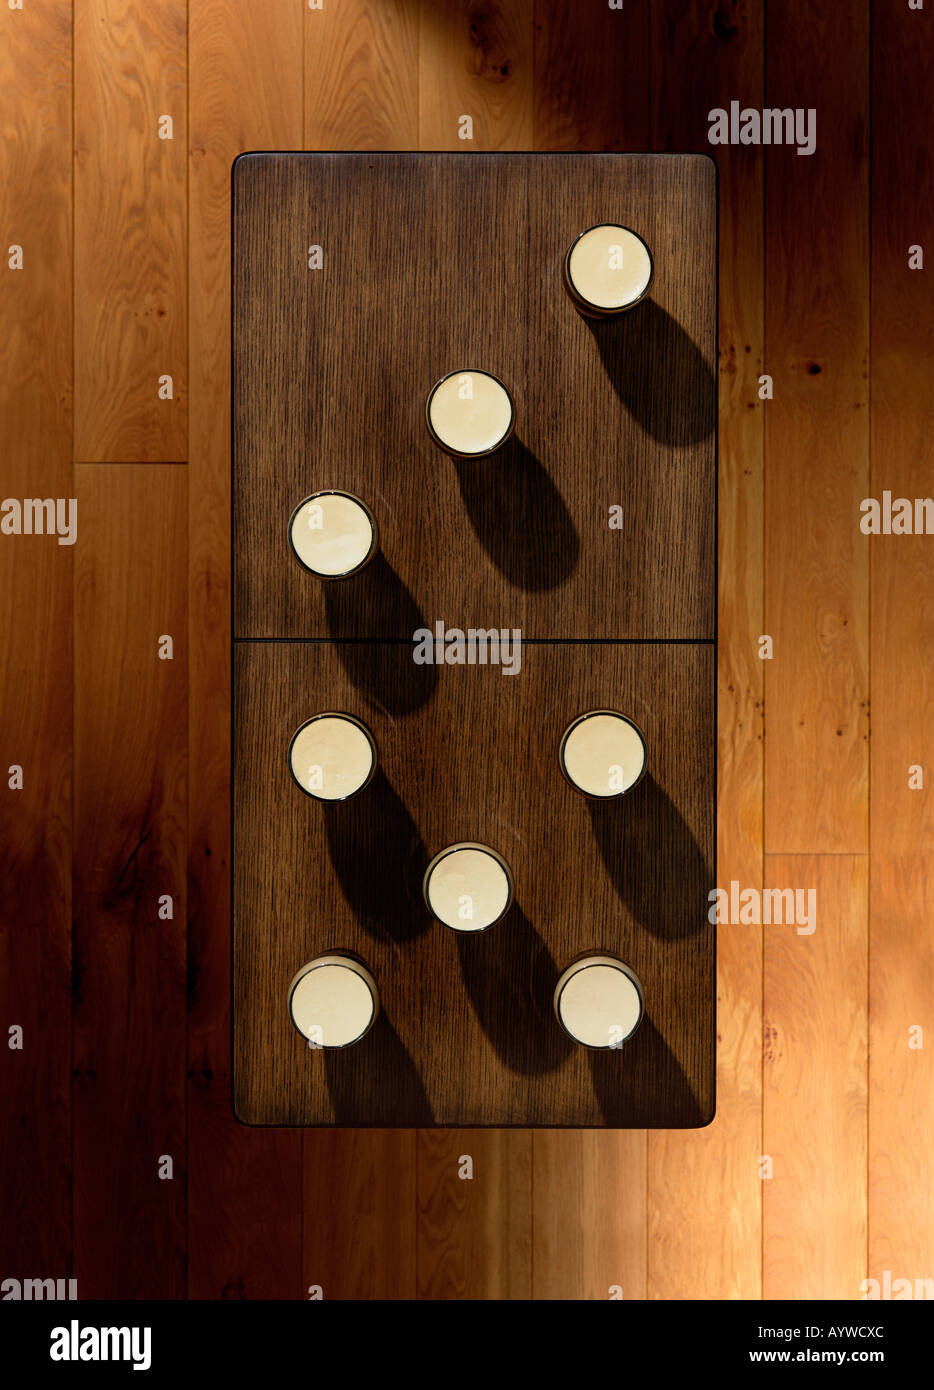 An overhead shot of a table with some pints placed on it to also look like a domino - Stock Image